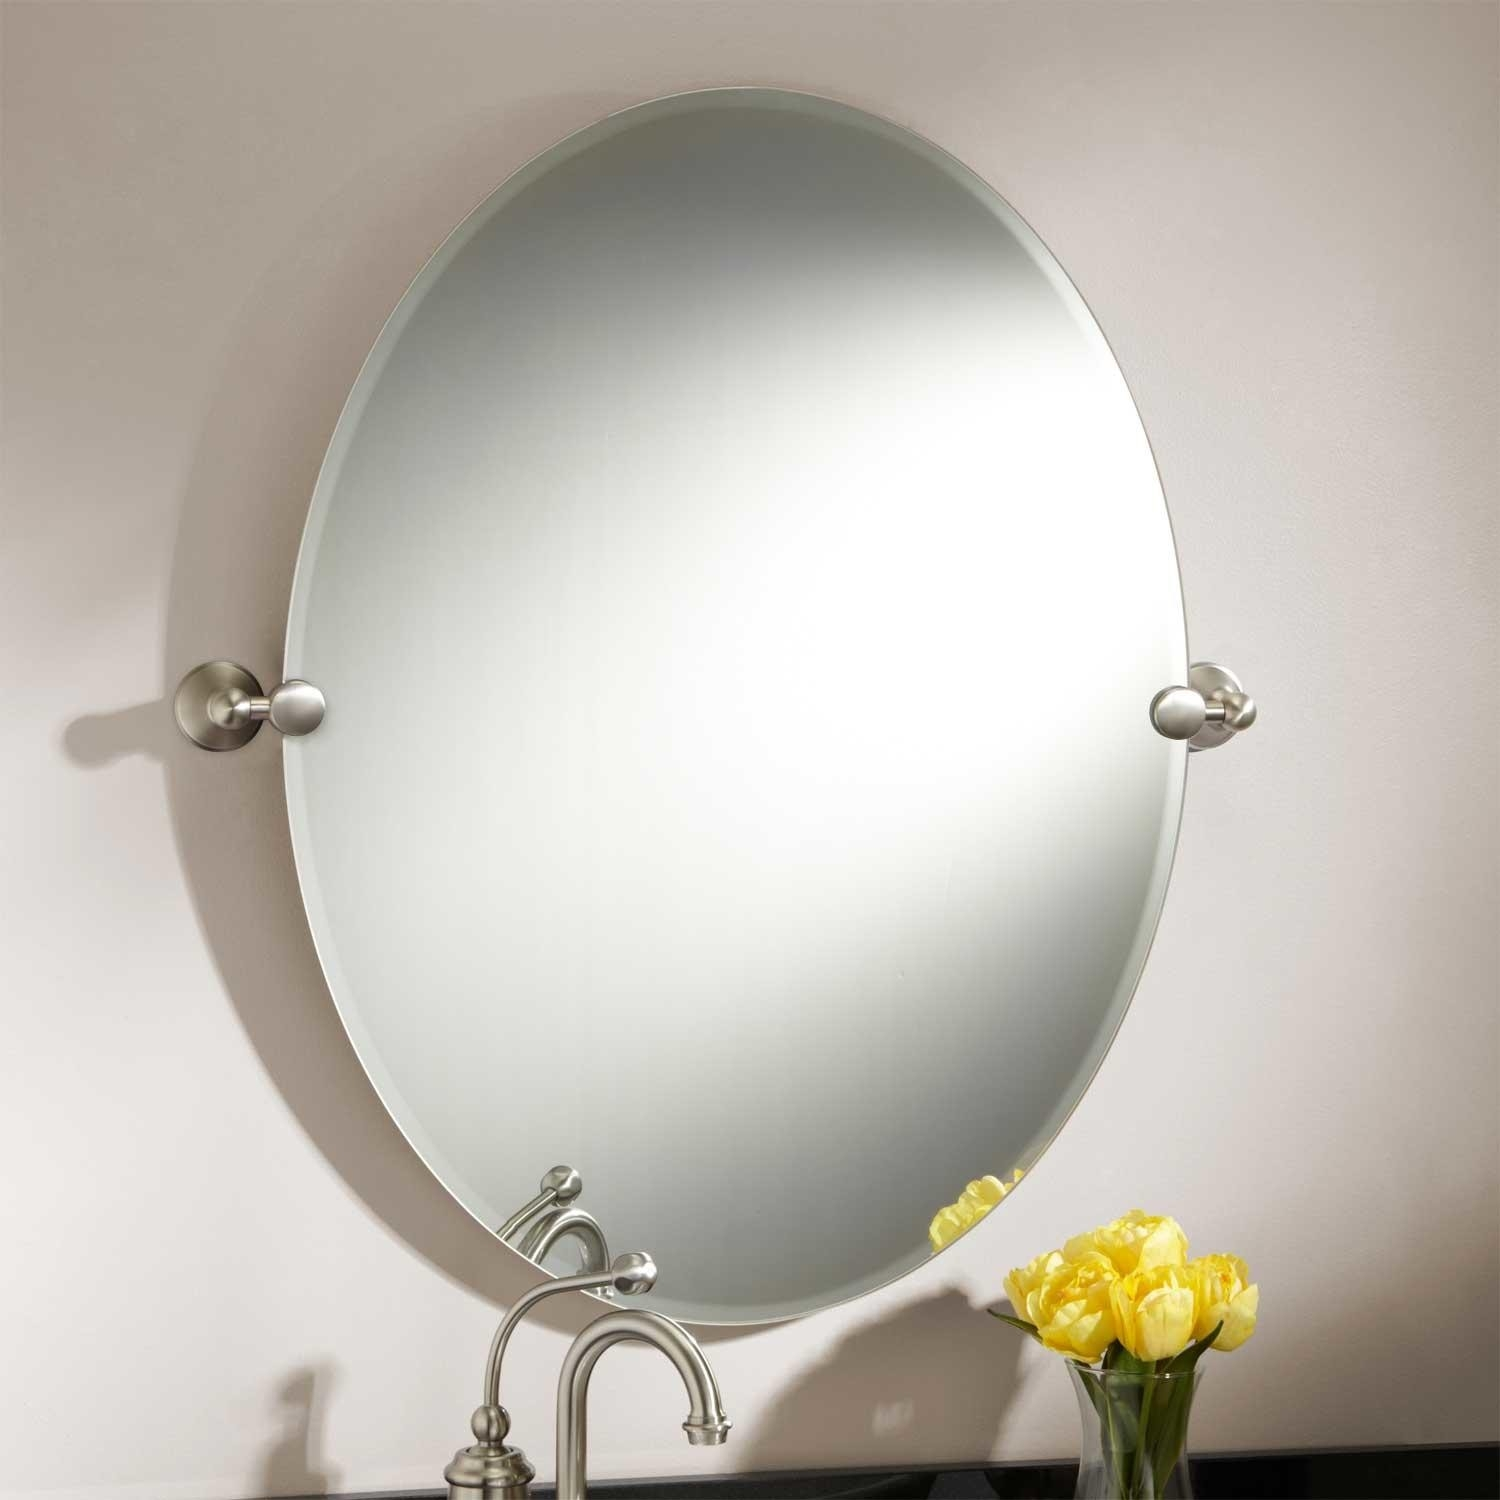 Pivot Circle Bathroom Mirrorpivot bathroom mirrors and tilting mirrors signature hardware